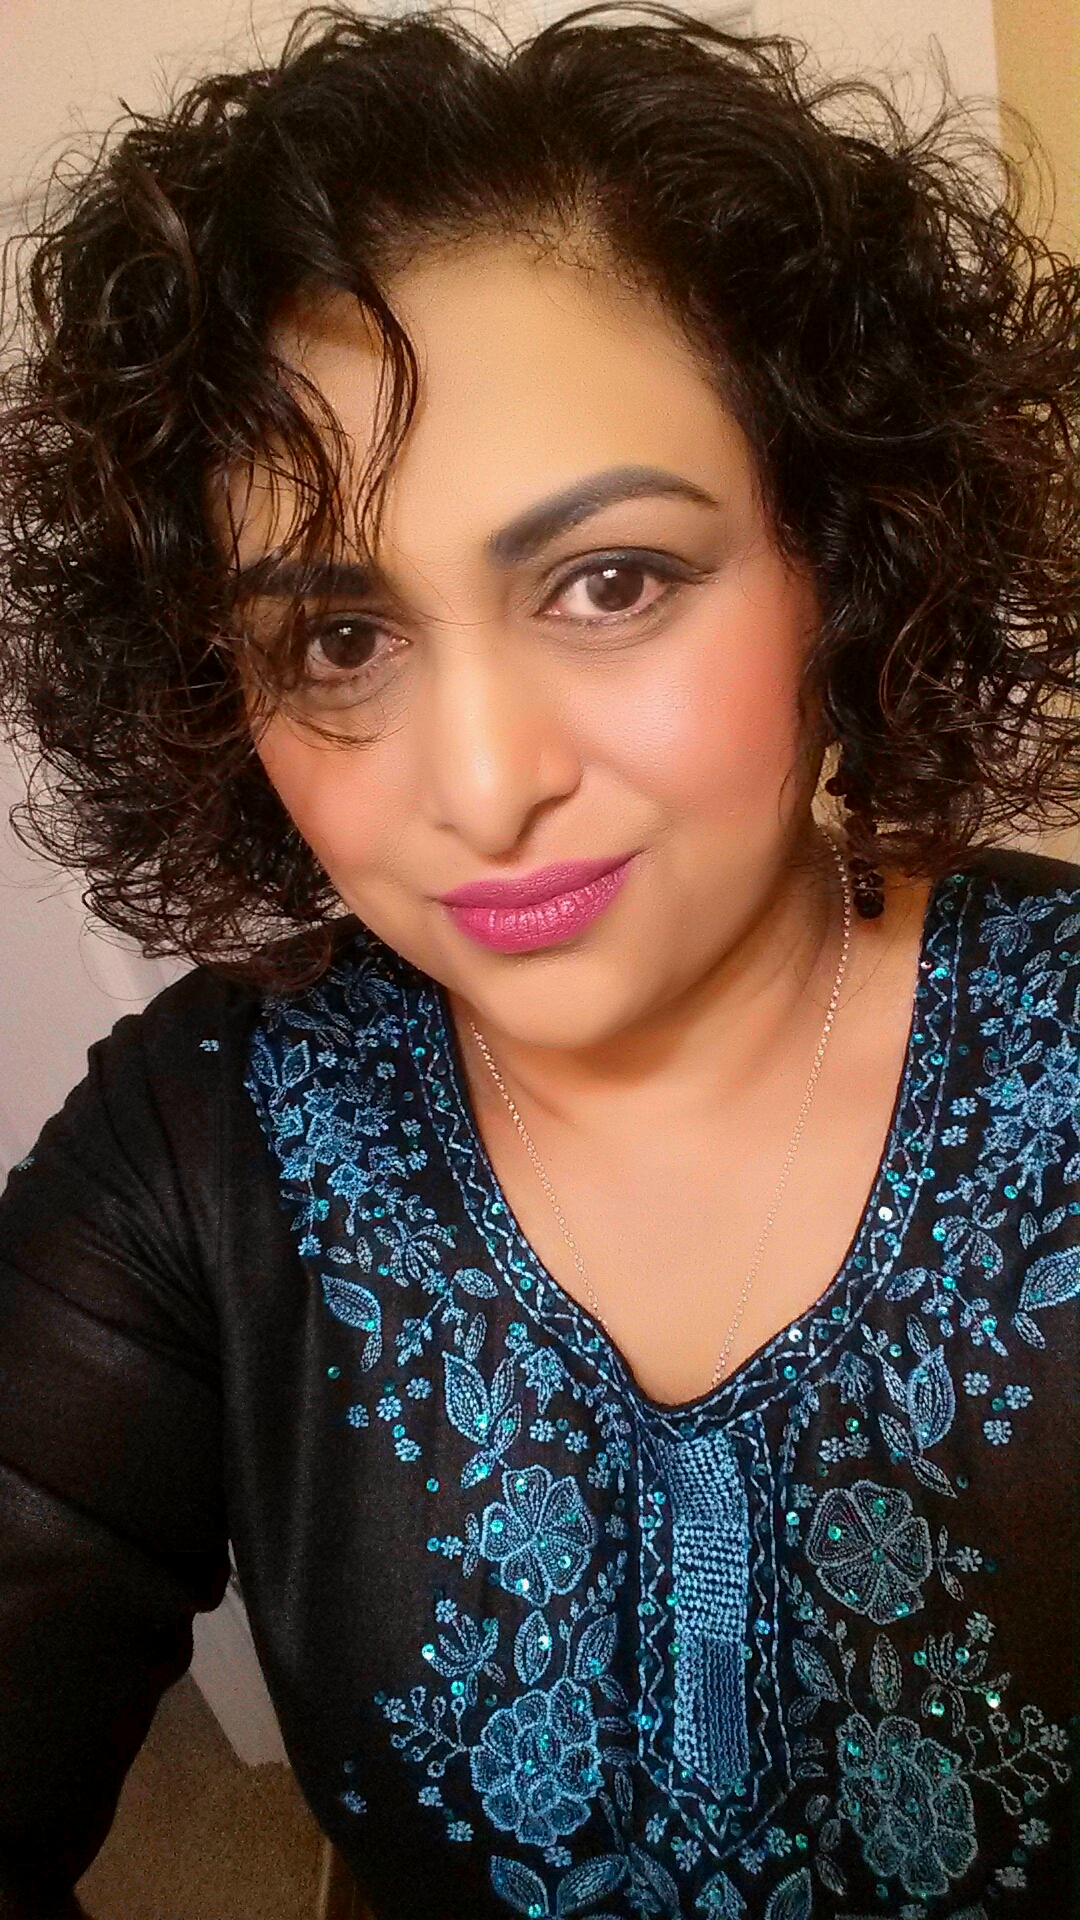 NILISHA DESAI Looking for Remote work at home position Jobs